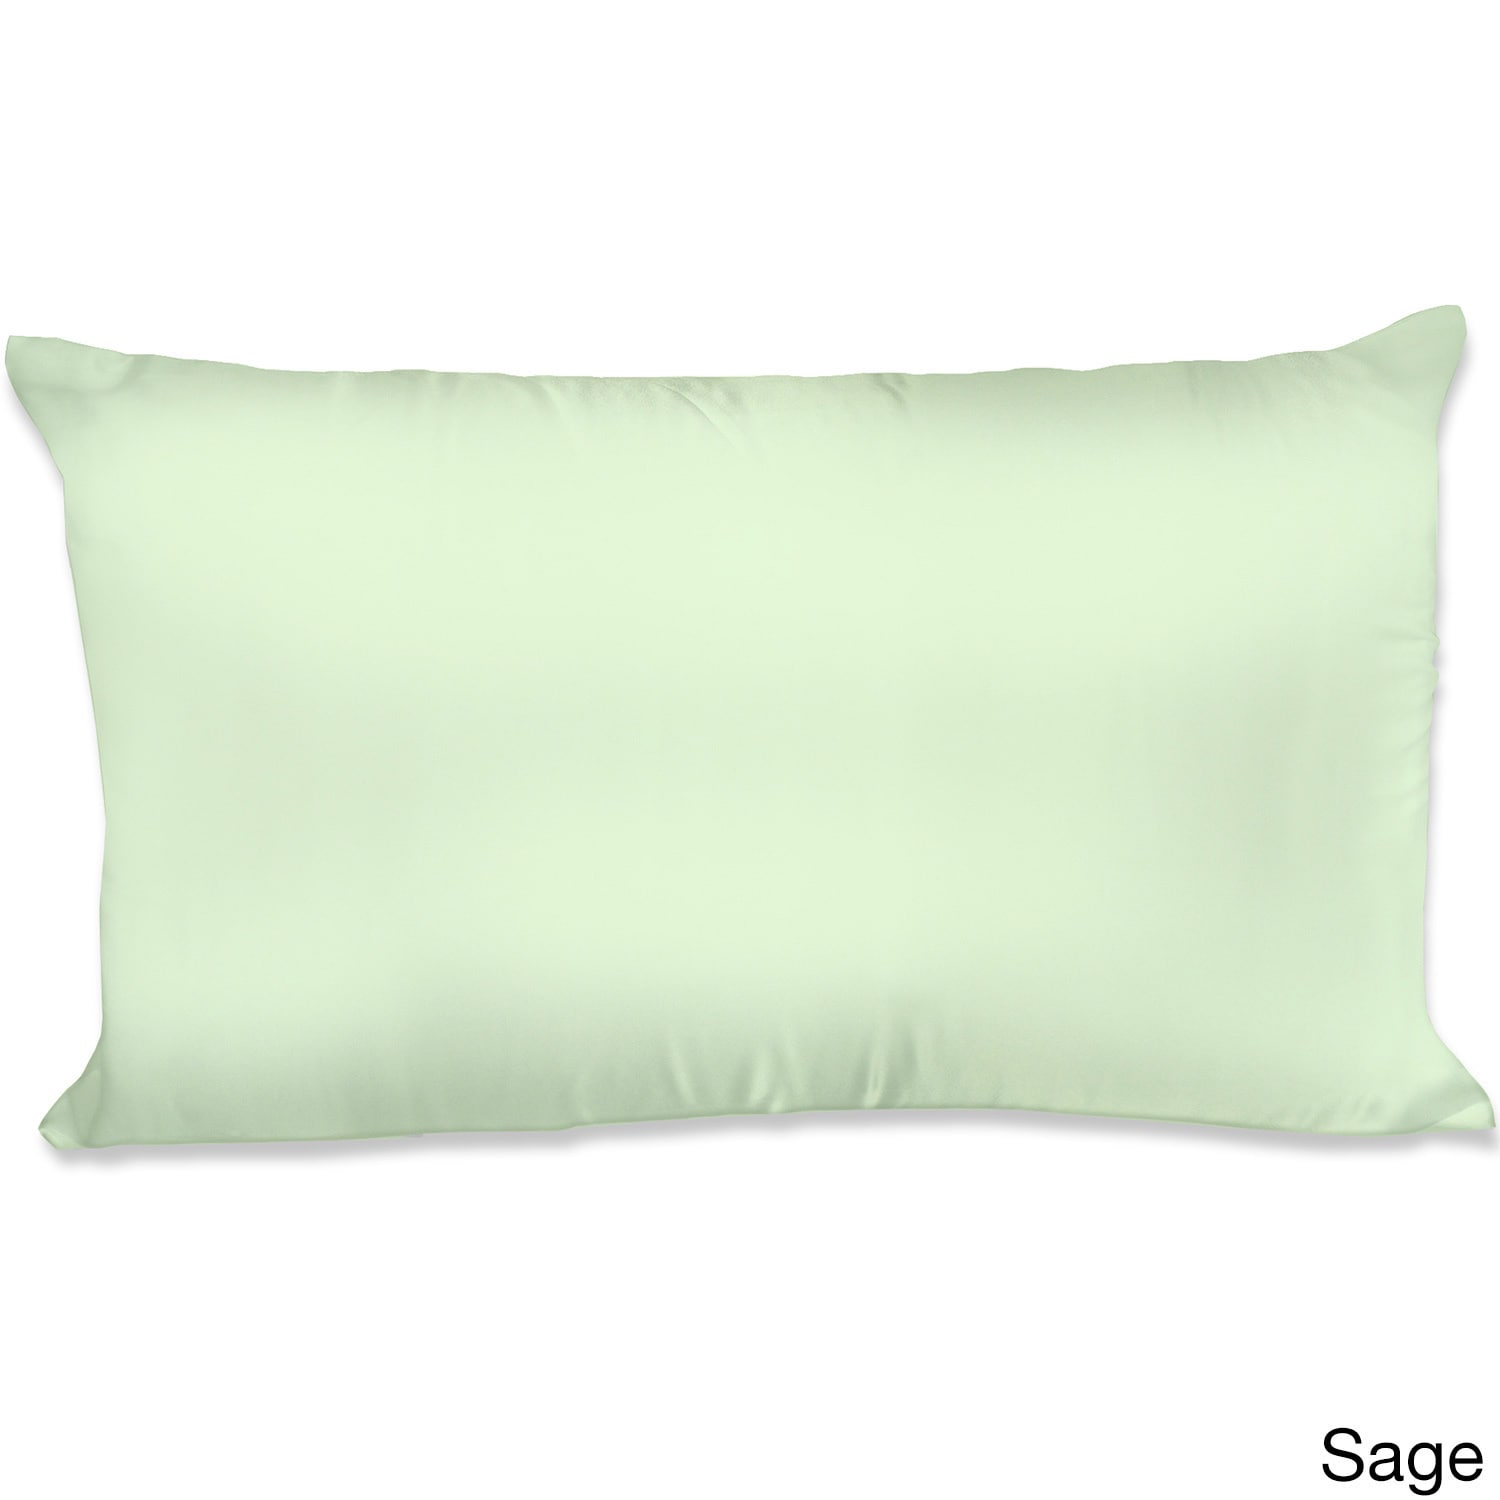 Online Shopping Bedding Furniture Electronics Jewelry Clothing More Satin Pillowcase Pillow Cases Pillows